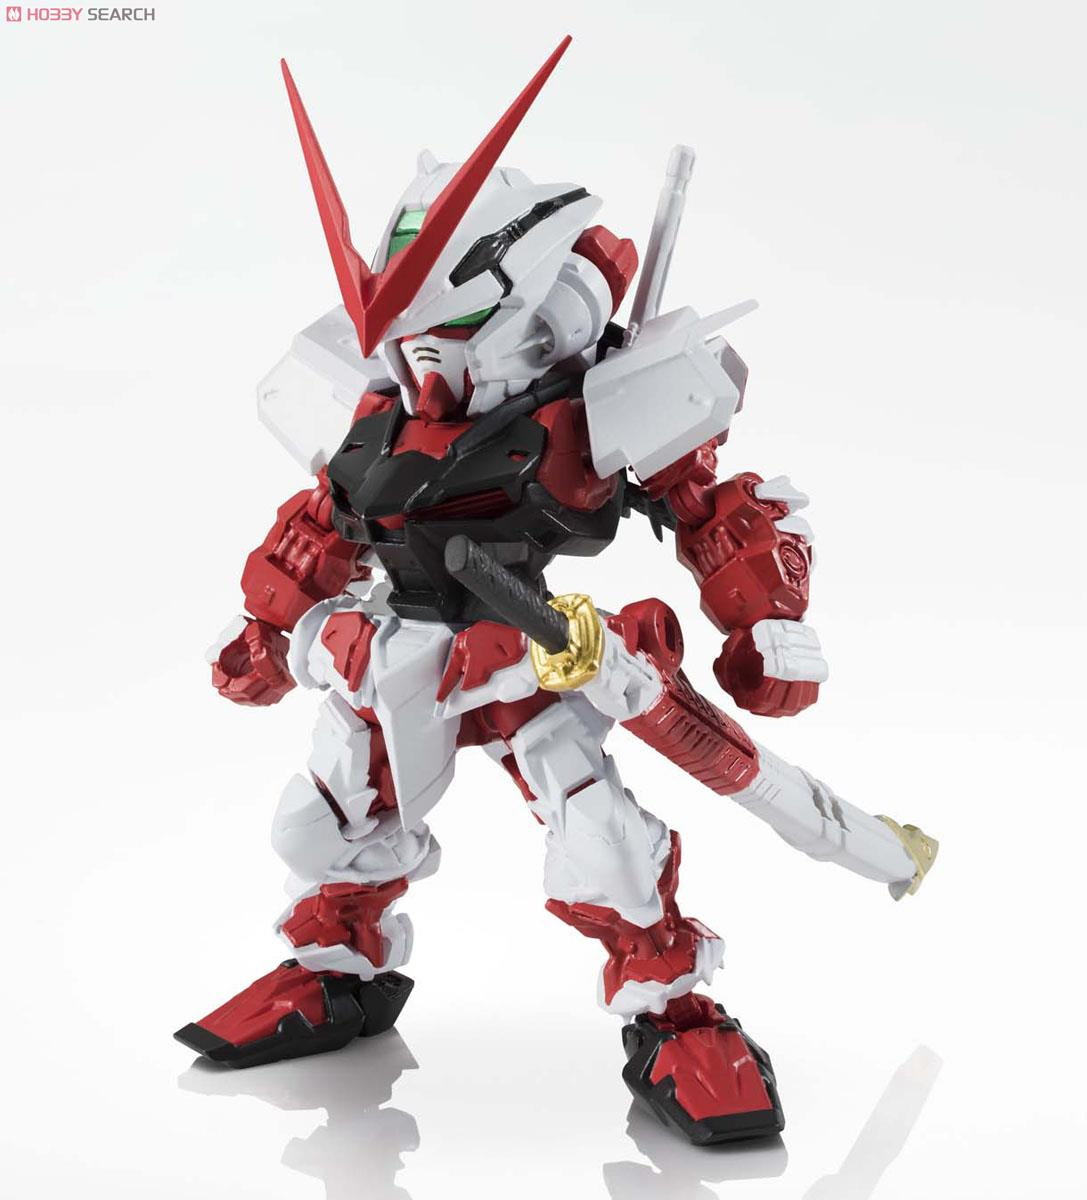 01260 Nxedge Style [MS UNIT] Gundam Astray Red Frame (Completed)